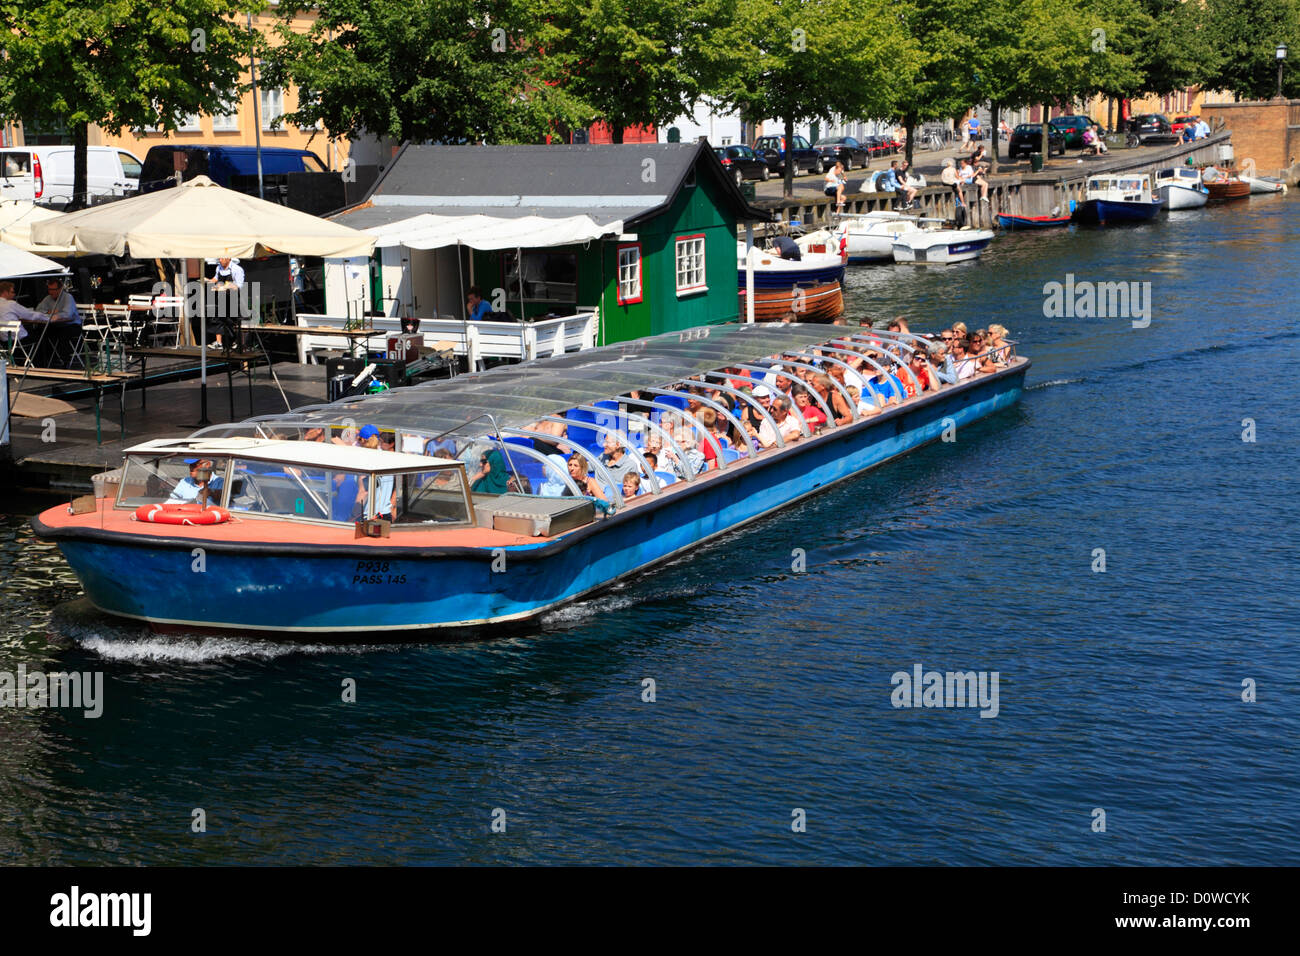 Canal cruise boat in the old and cosy Christianshavns Canal in Copenhagen, Denmark, with restaurants and cafés - Stock Image